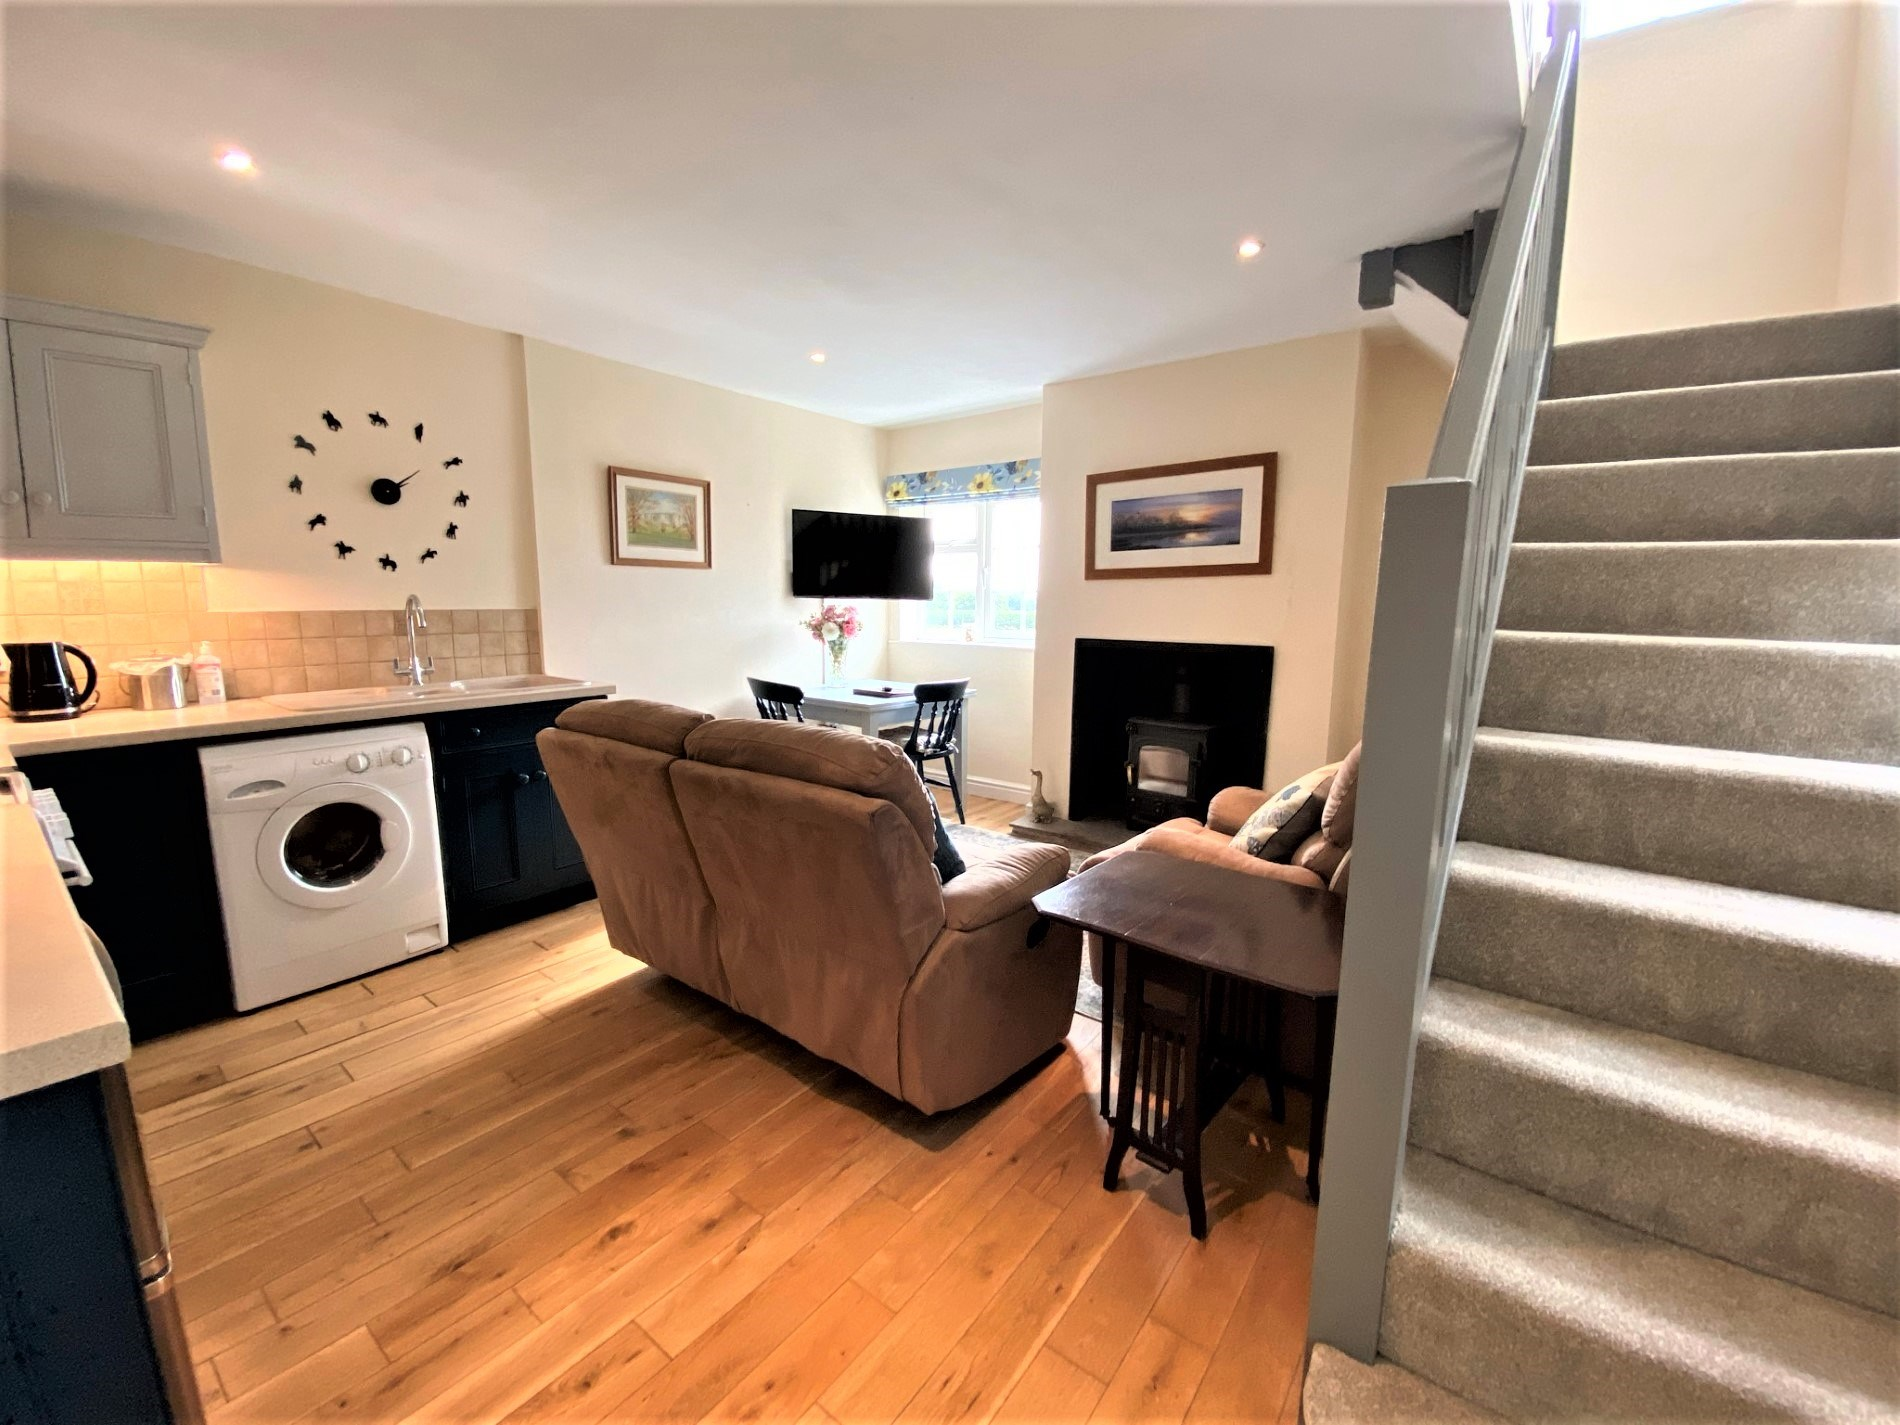 1 Bedroom Cottage in Tarporley, Snowdonia, North Wales and Cheshire